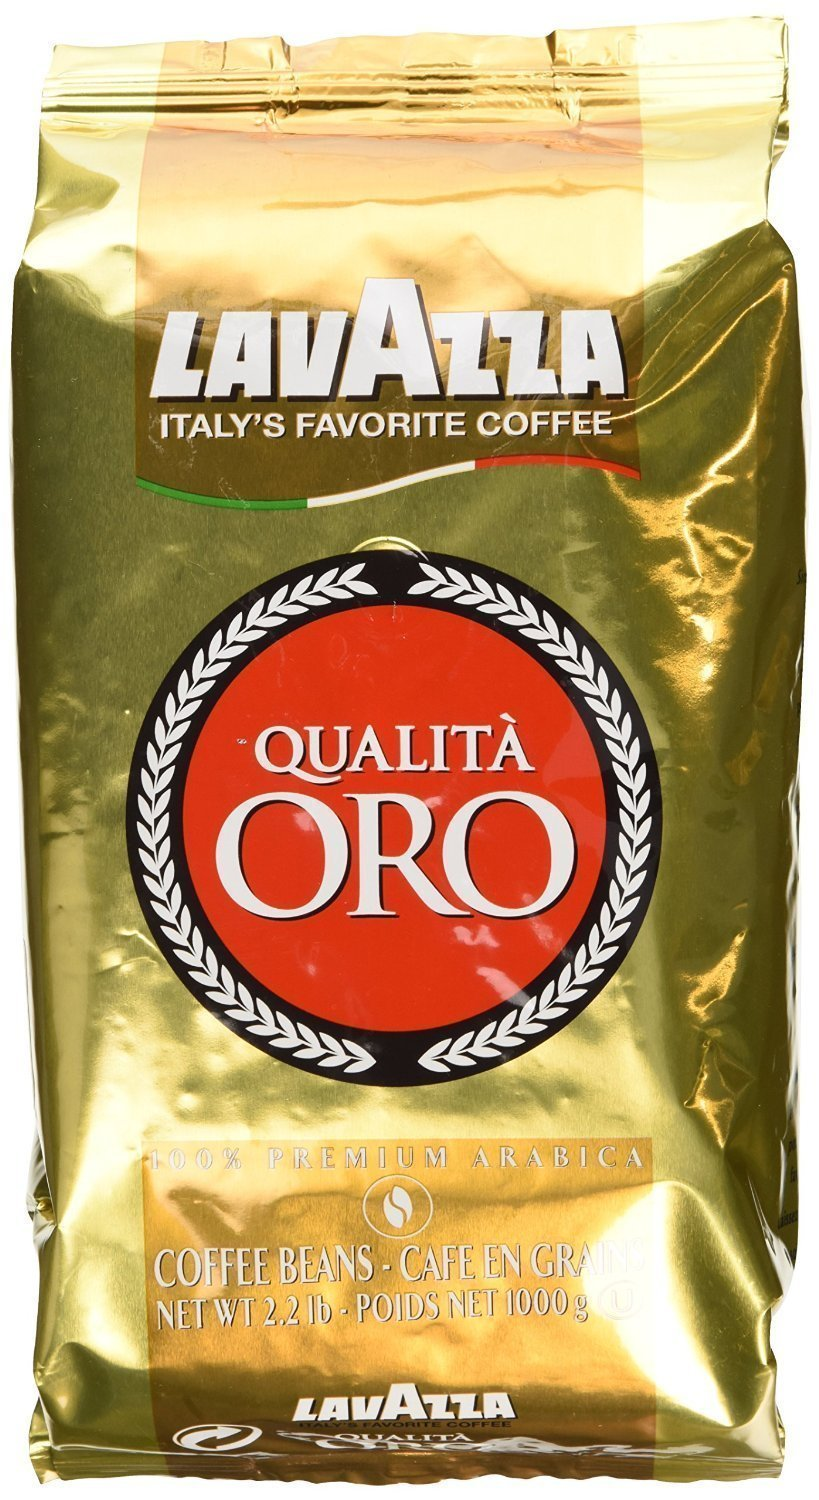 Lavazza Qualita Oro Italian Coffee Whole Beans 2.2 Pound - Pack of 2 by Lavazza